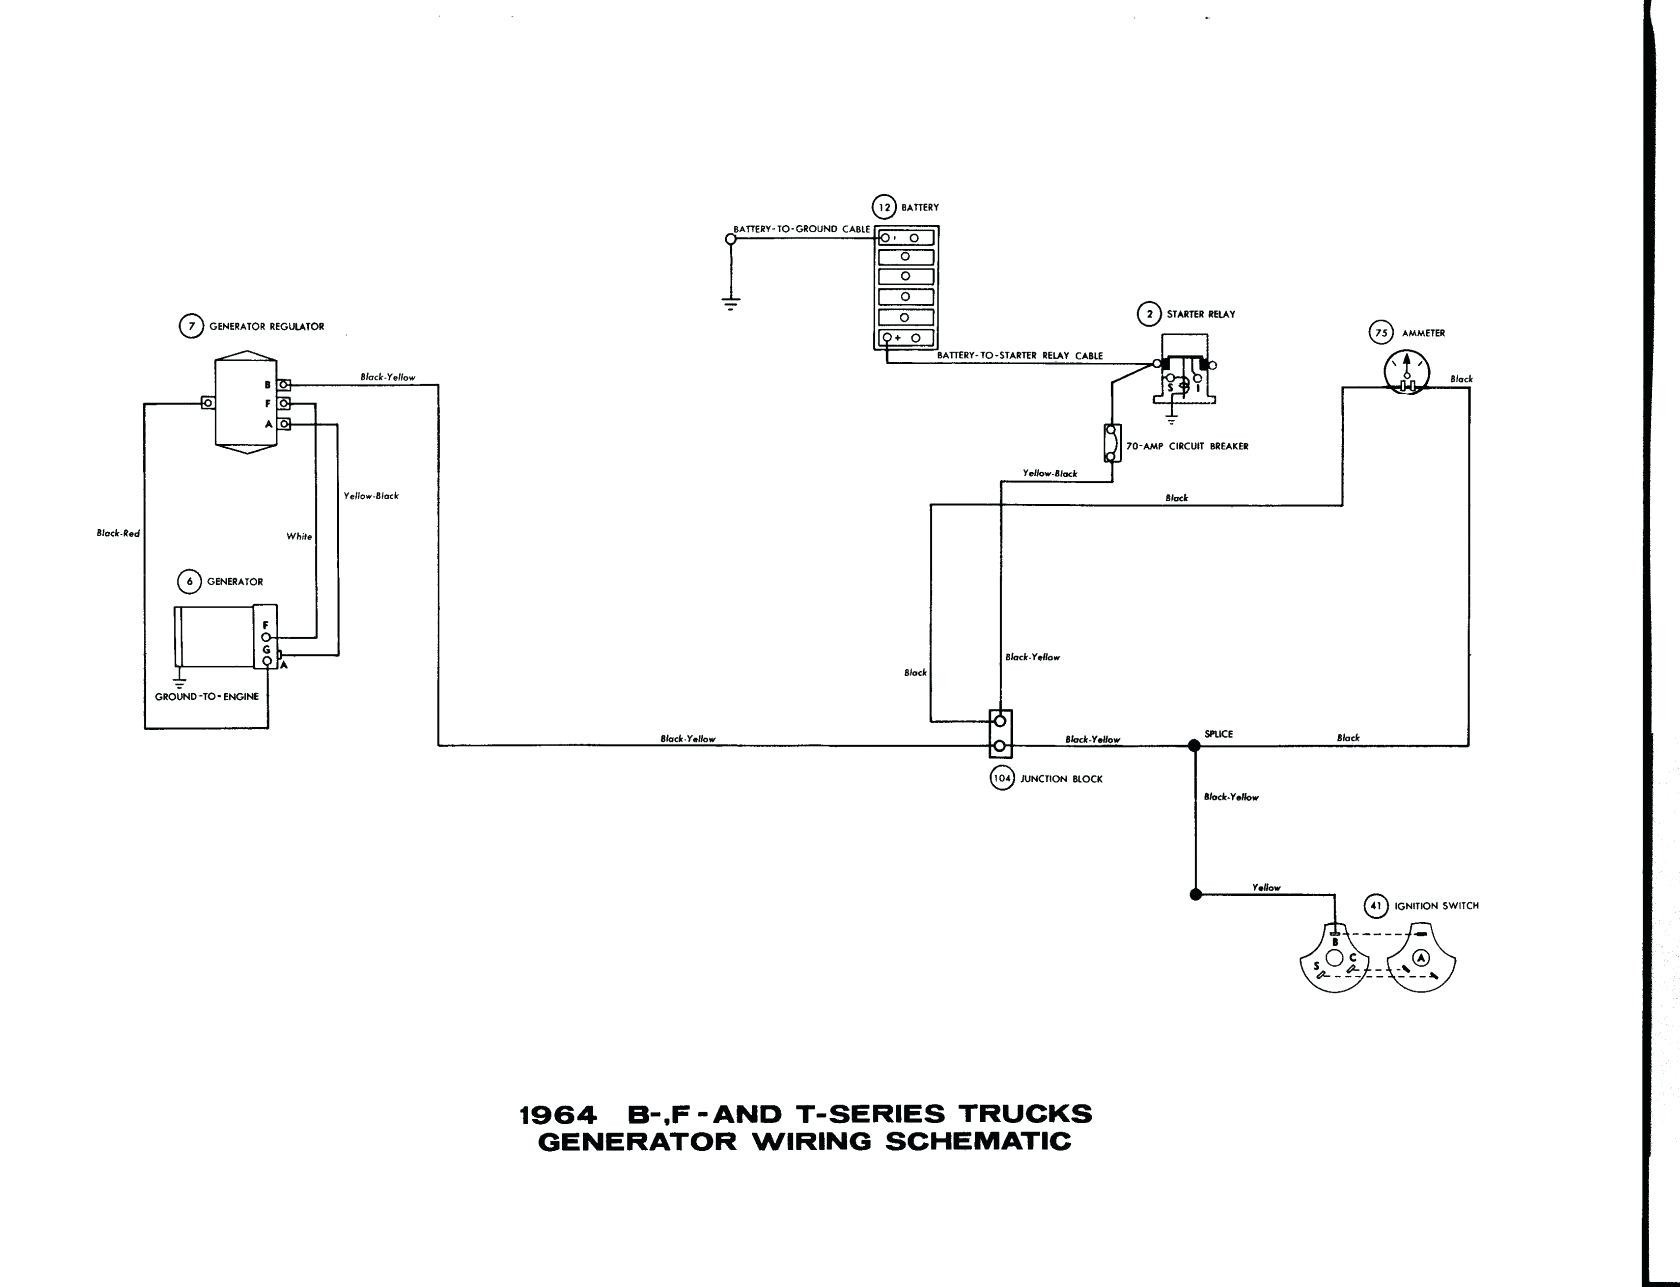 Ac Delco Alternator Wiring Diagram Sample | Wiring Diagram ... on